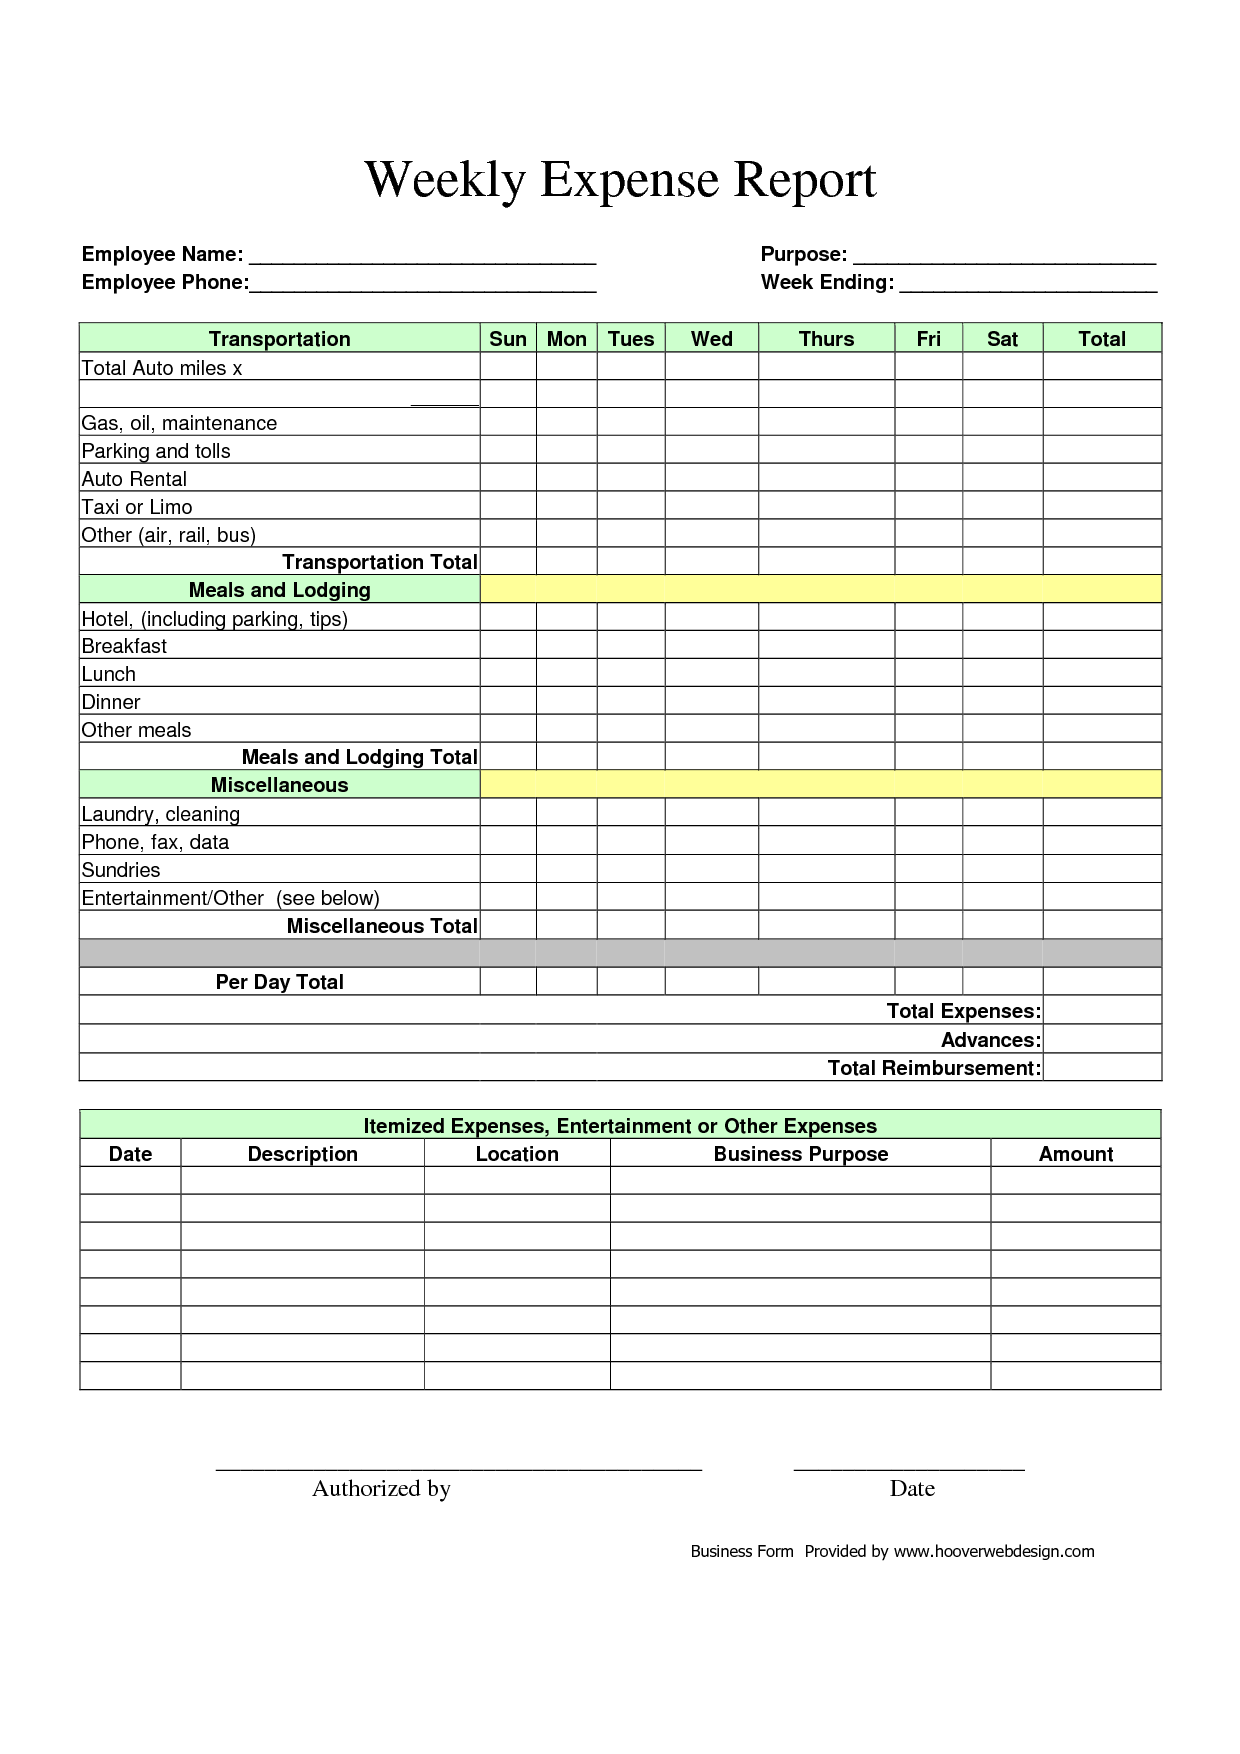 Business Travel Expenses Template and Free Blank Weekly Expense Report Template Sample for Personal and